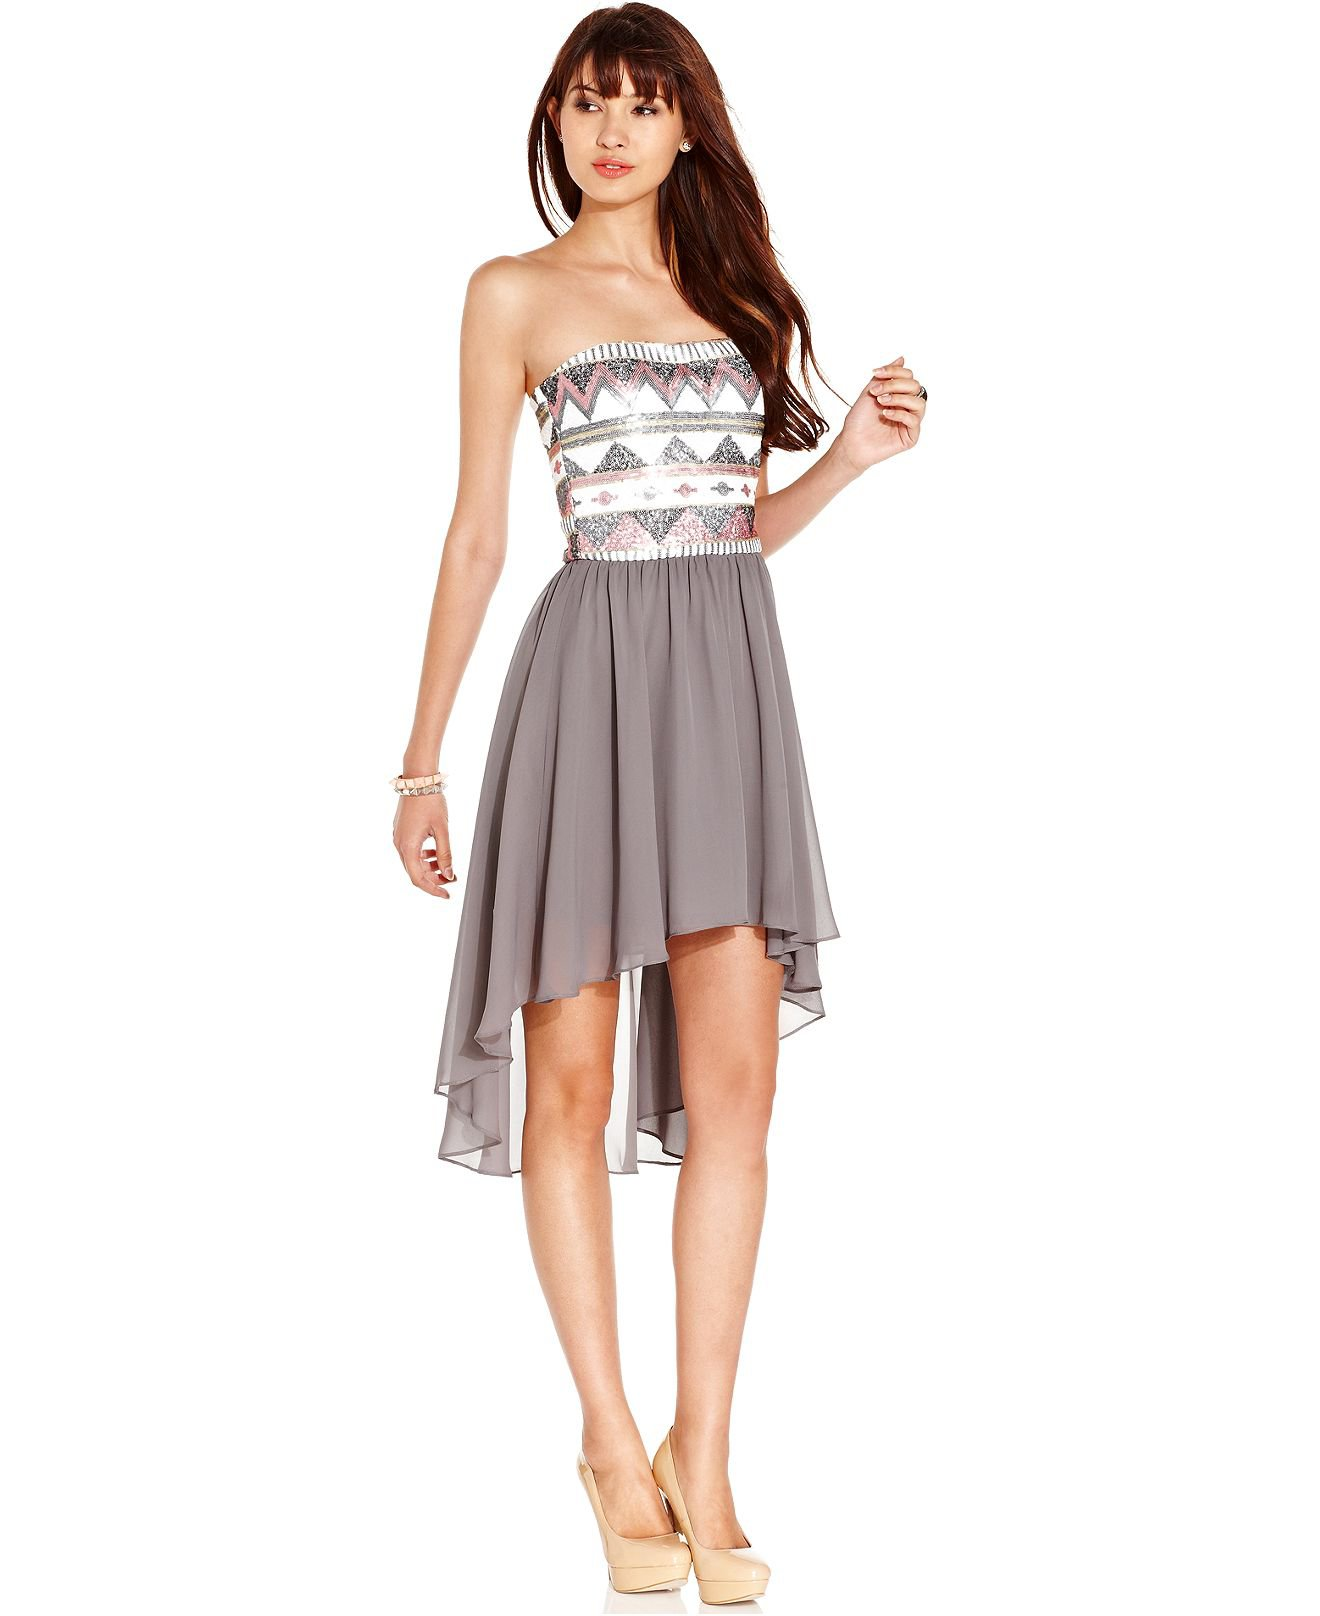 Macy'S Formal Dresses Juniors - Holiday Dresses